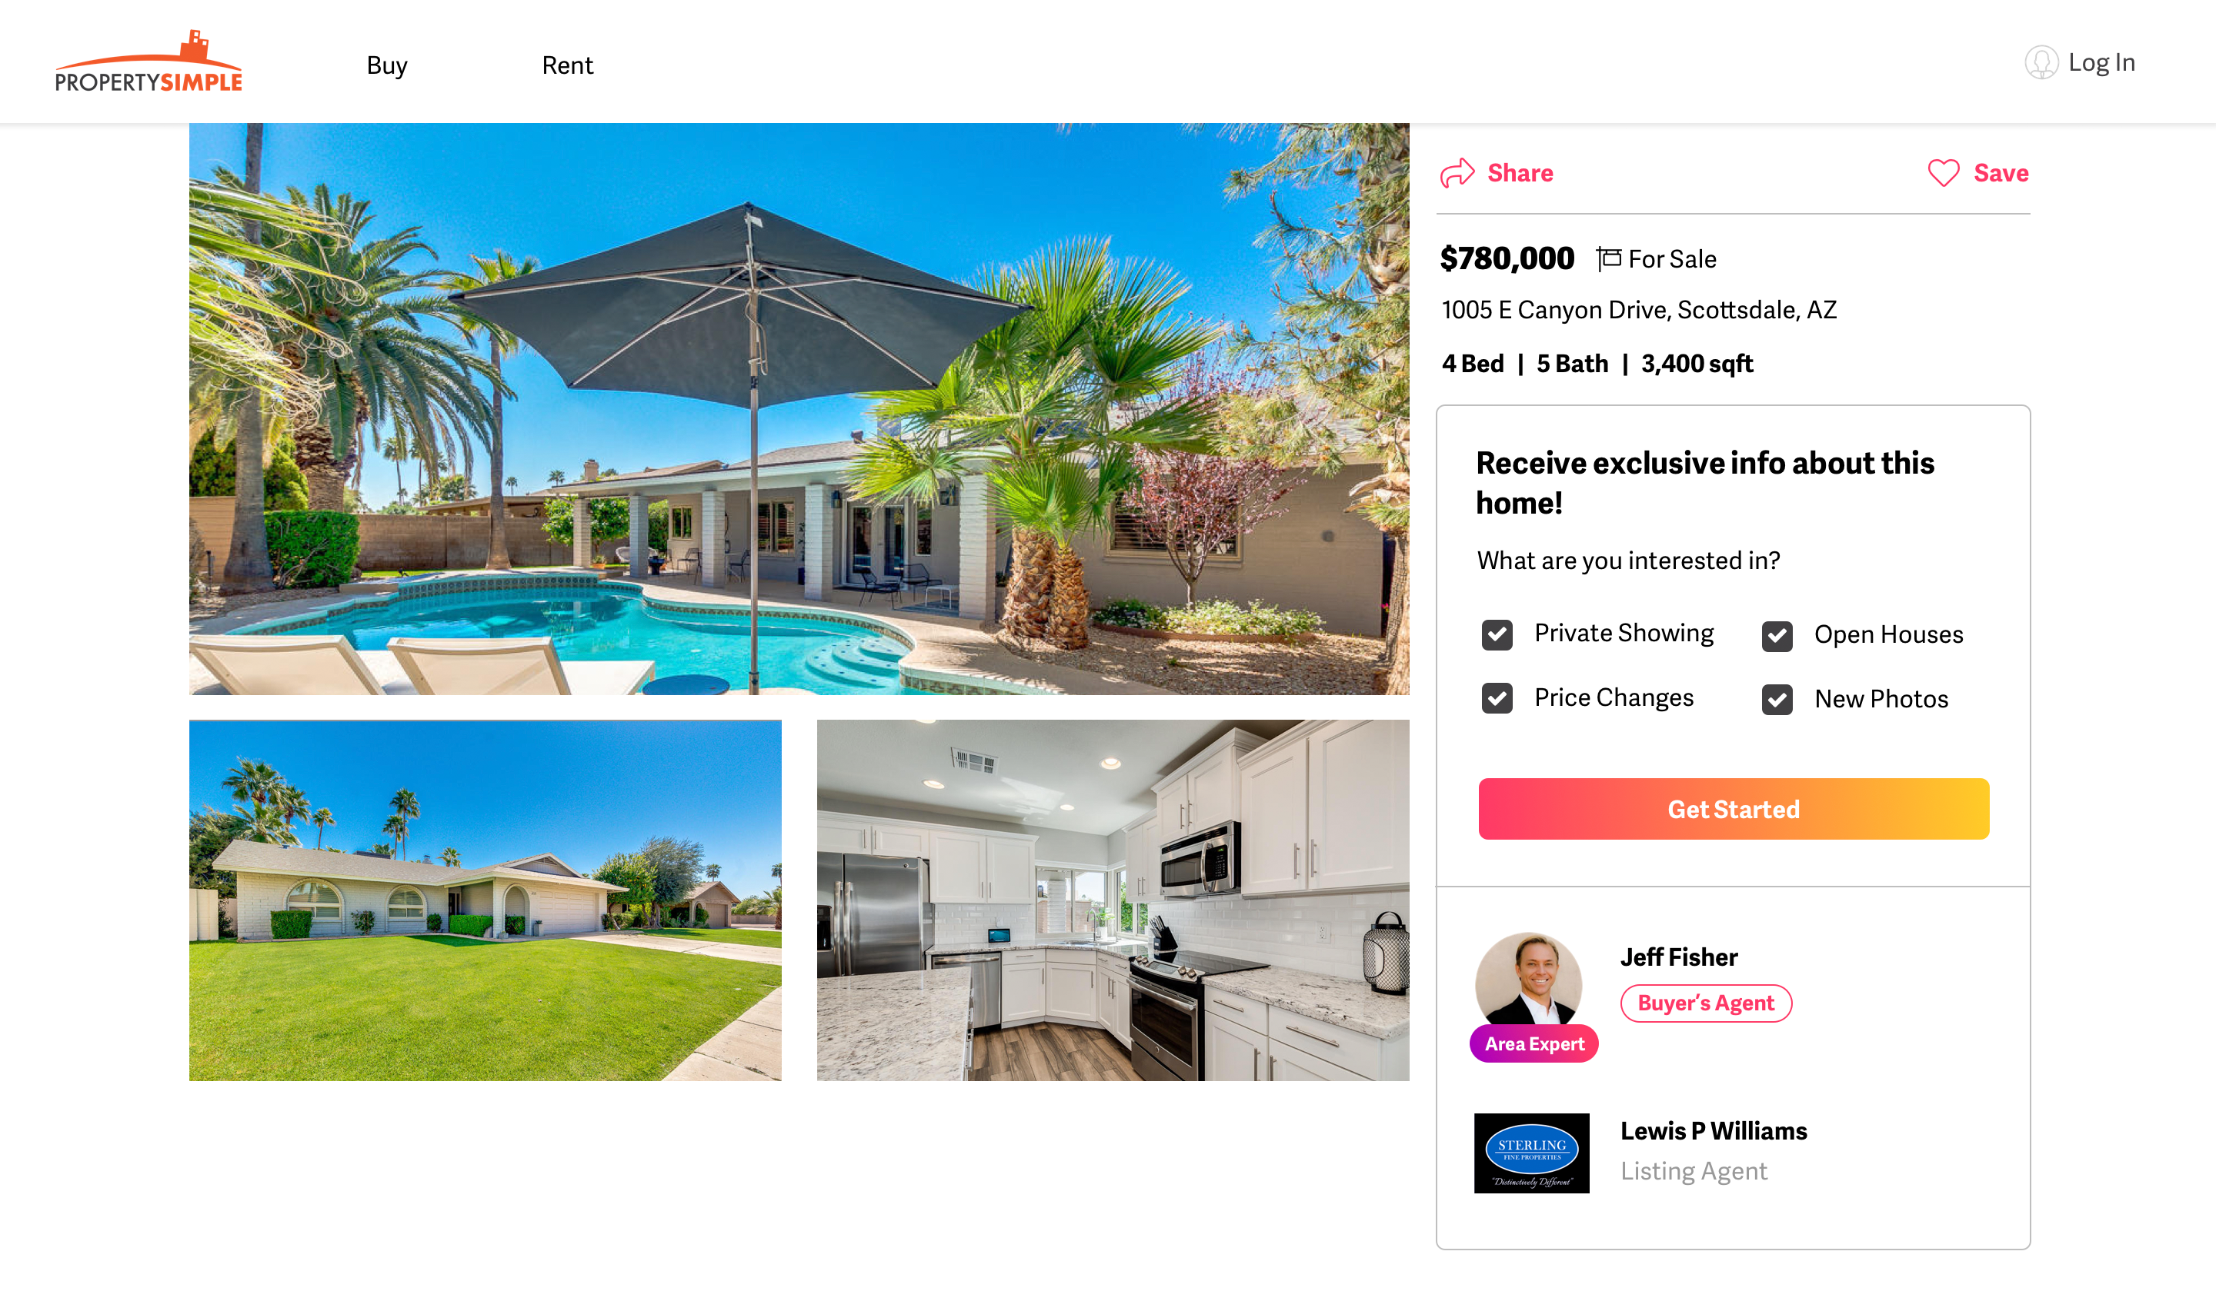 example of how a real estate agent's photo looks on any listing in their ZIP Code